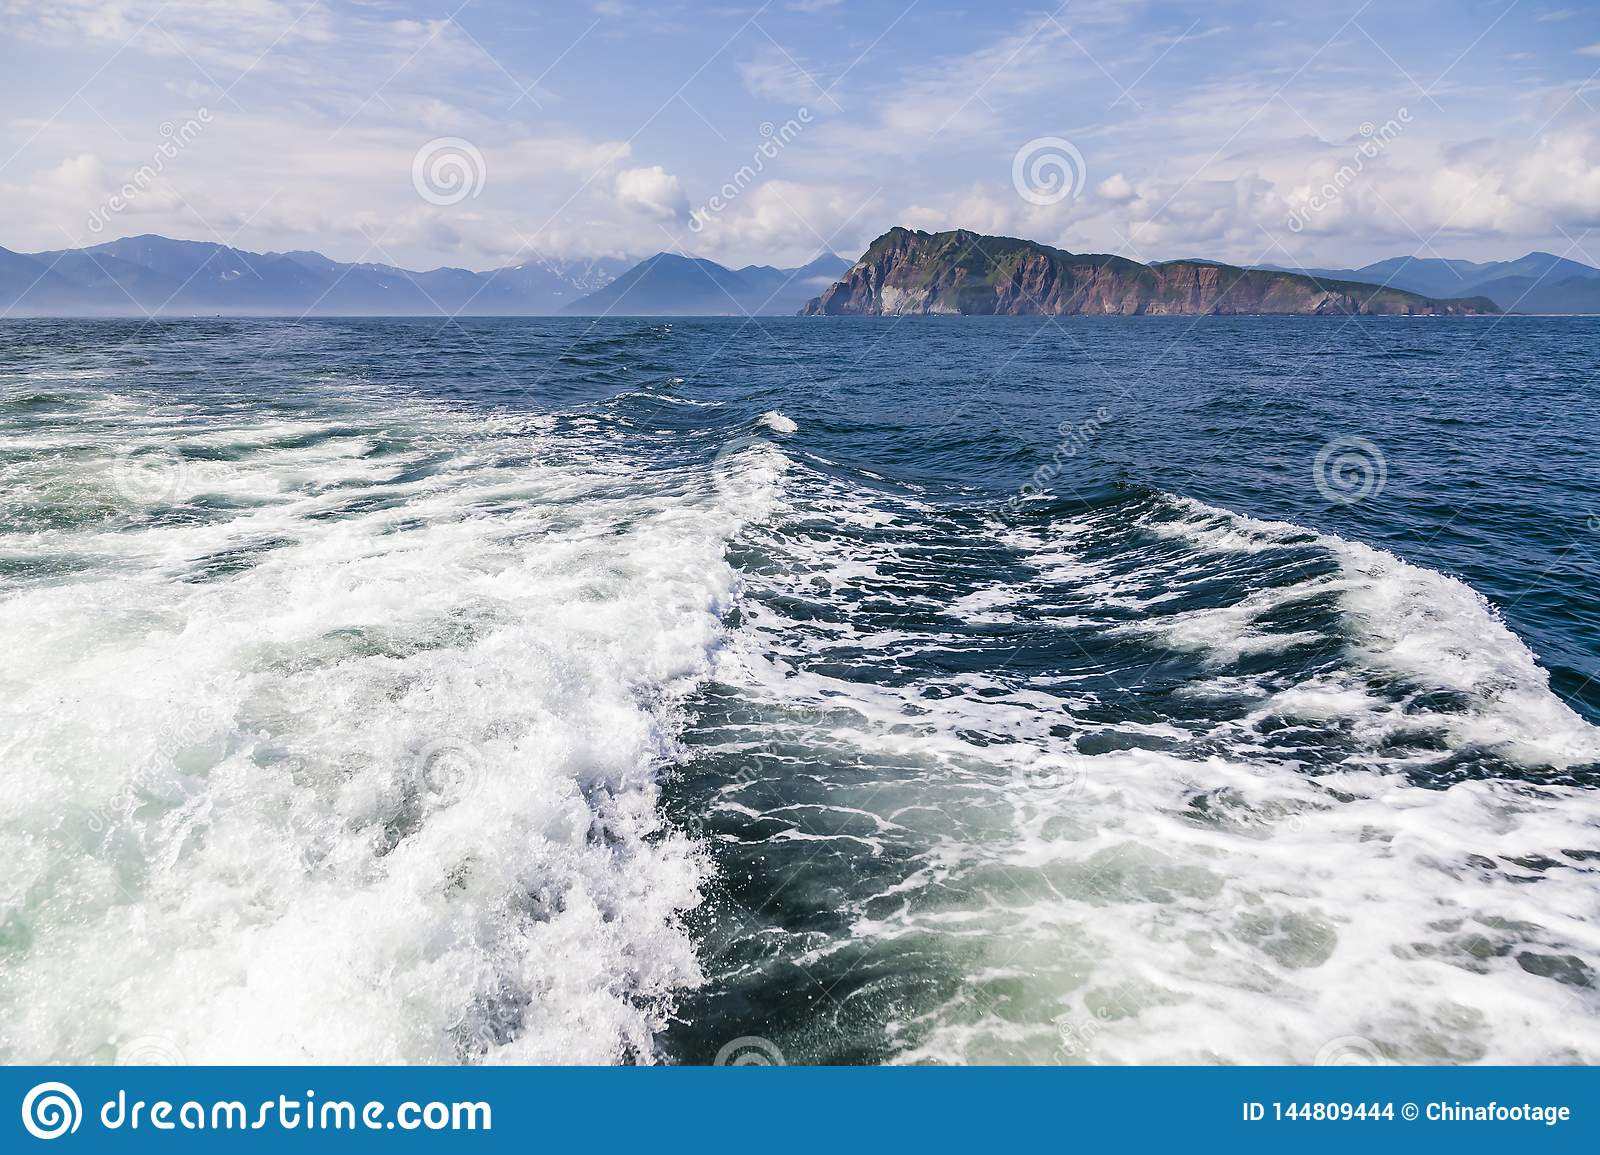 A deep blue sea with island in distance with medium water wave ripple.